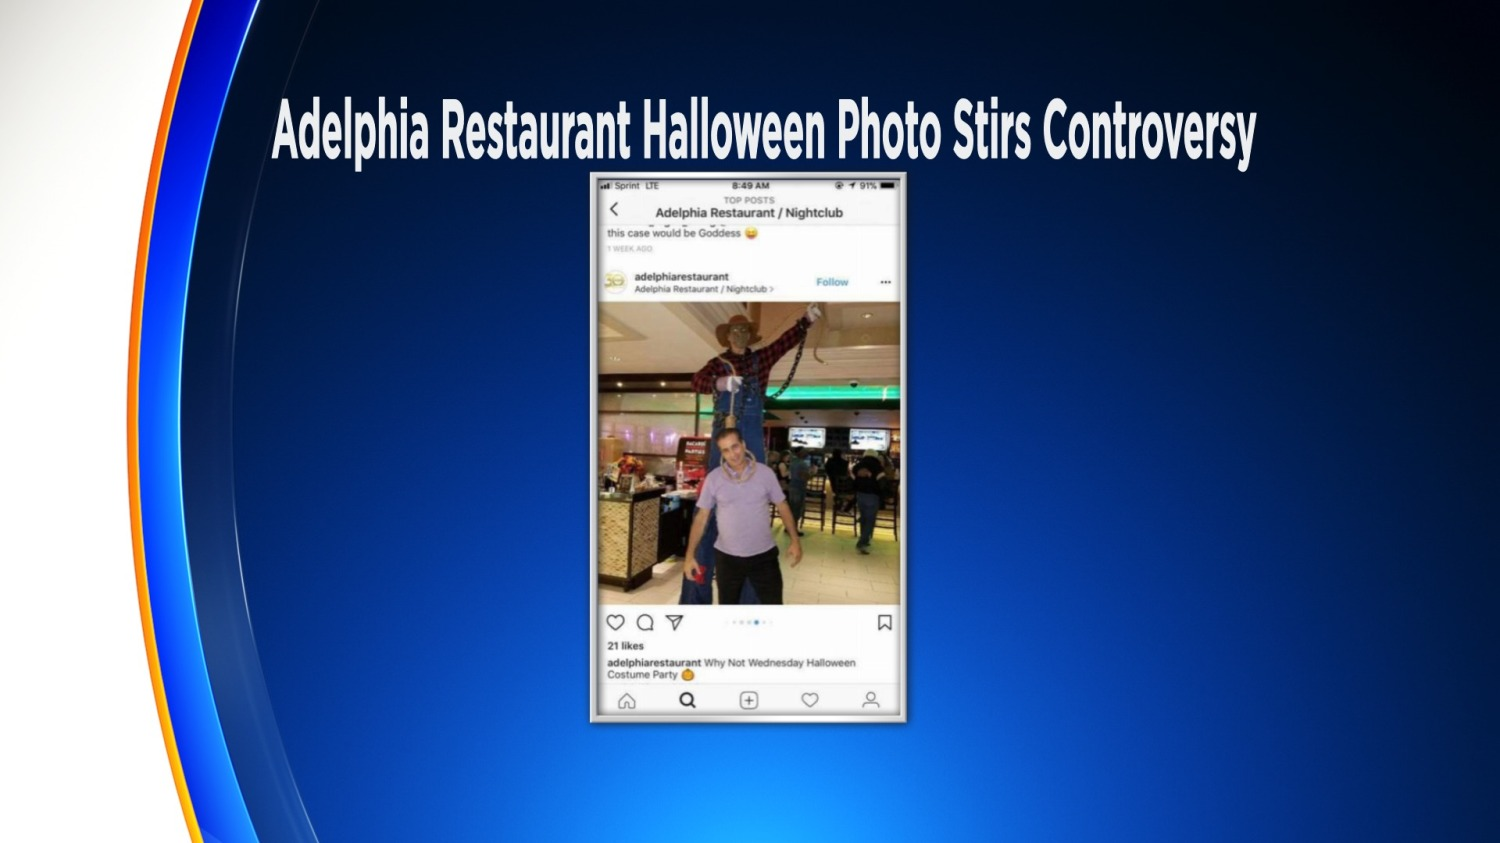 Adelphia Halloween Party 2020 Halloween Party Picture With Racial Overtones Causes Stir In